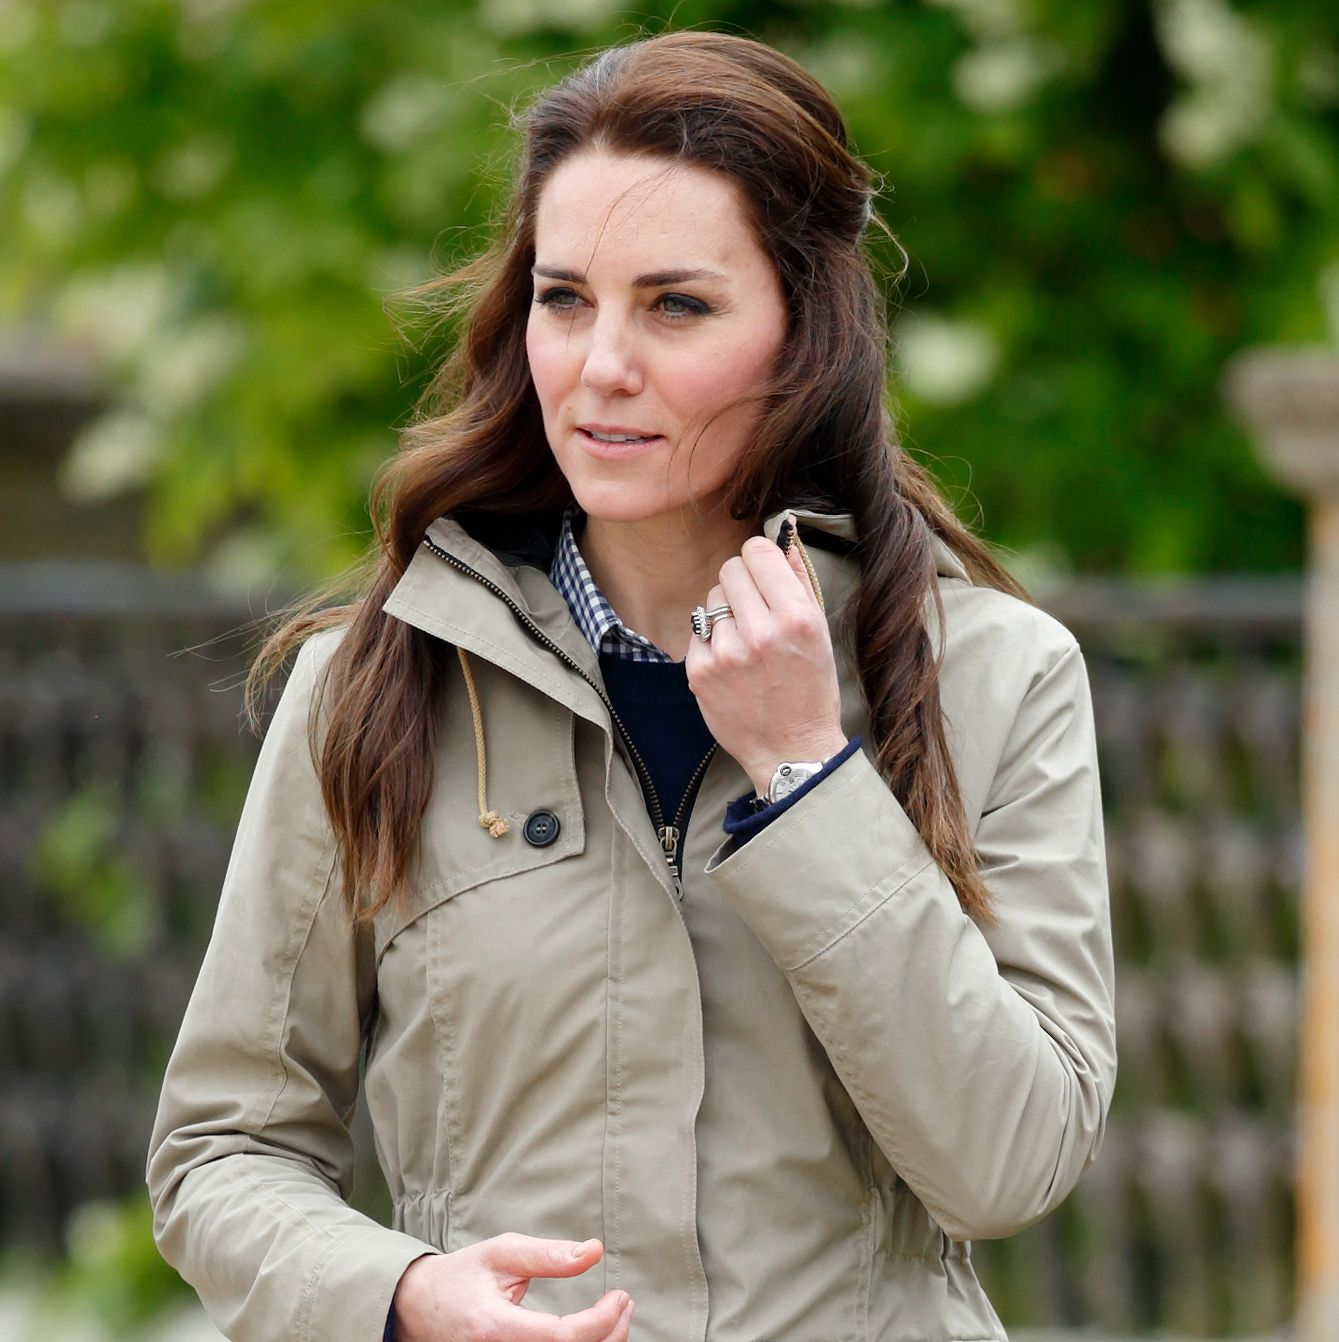 Kate Middleton Walks Outside of Kensington Palace, Shocks Bystanders